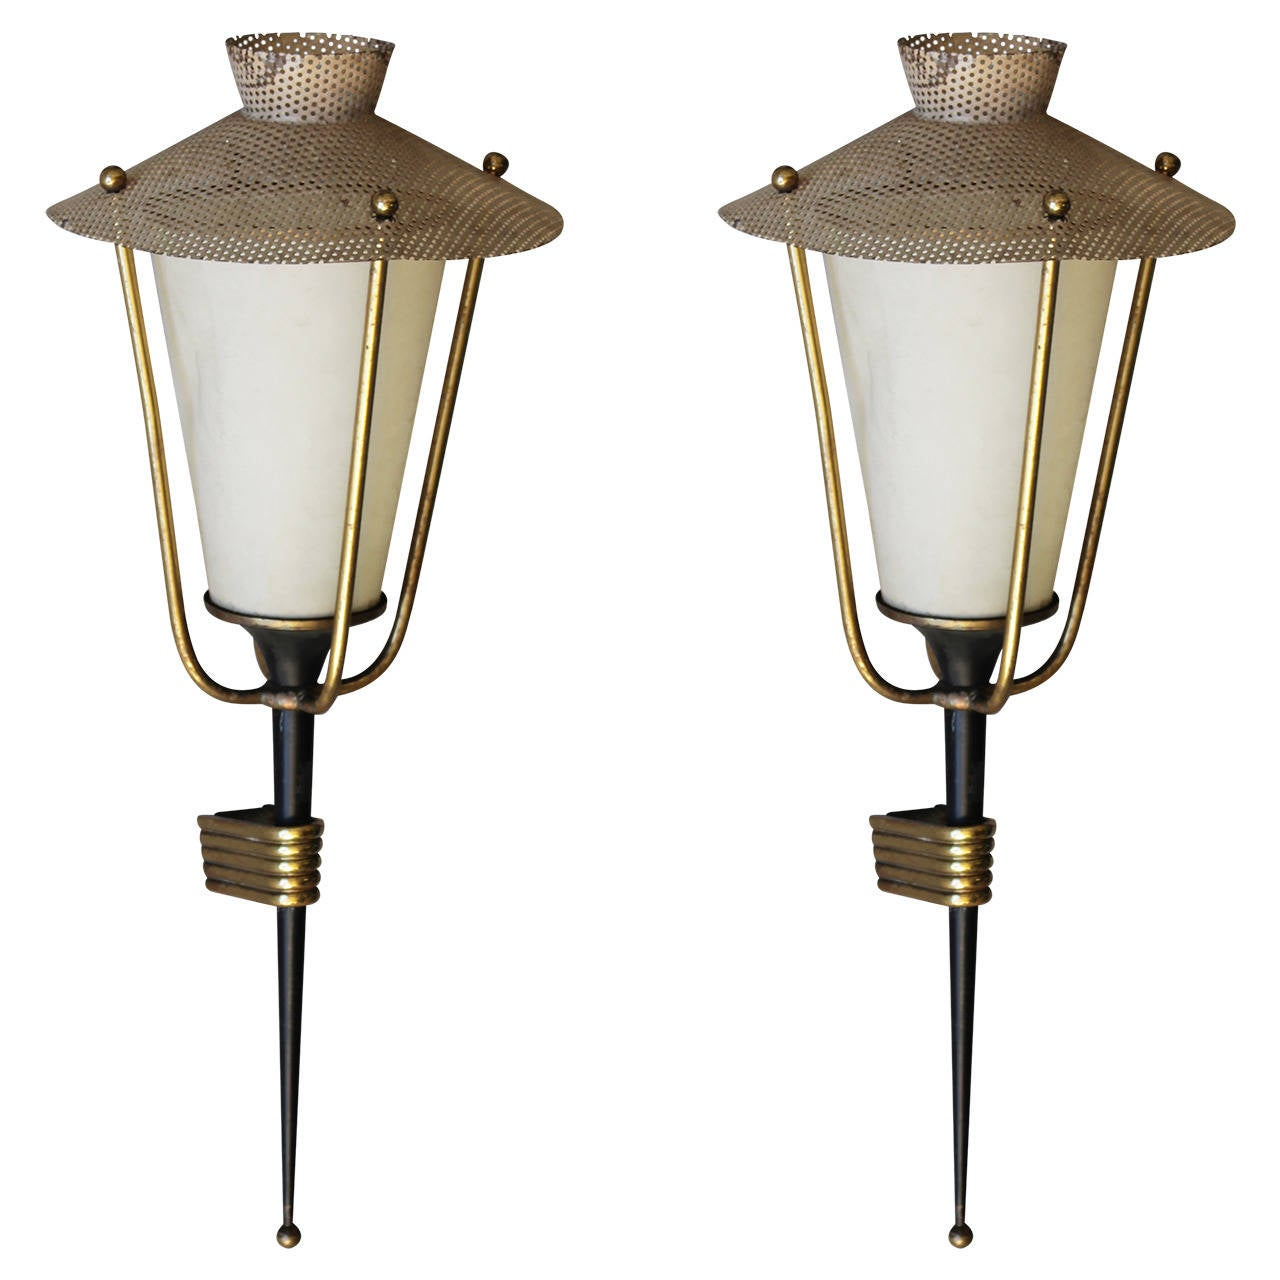 Pair of Corner Mounted Sconces by Maison Arlus